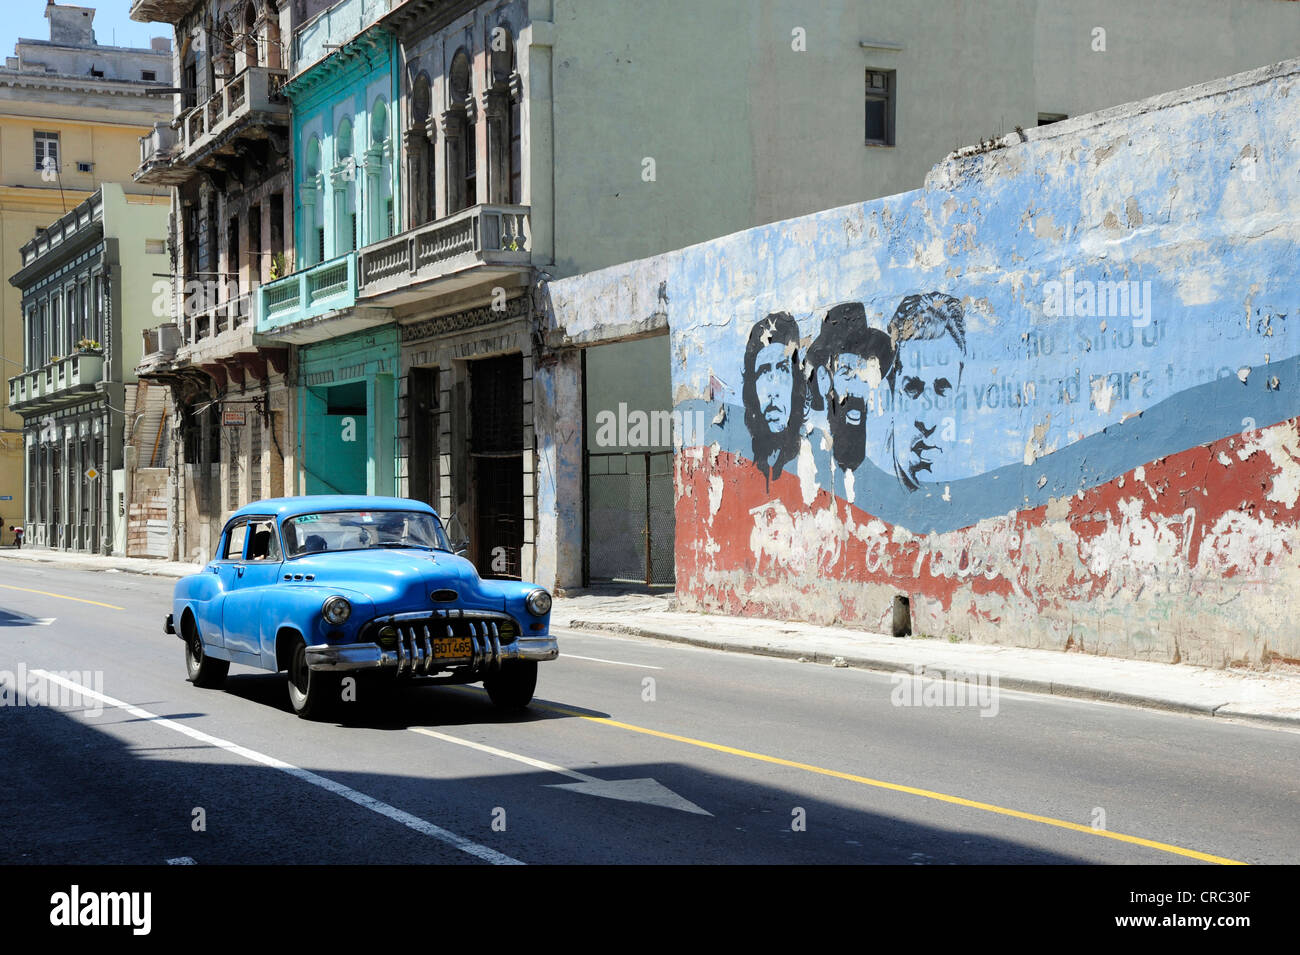 Blue 1950s vintage car, mural painting in the city centre of Havana, Centro Habana, Cuba, Greater Antilles, Caribbean - Stock Image